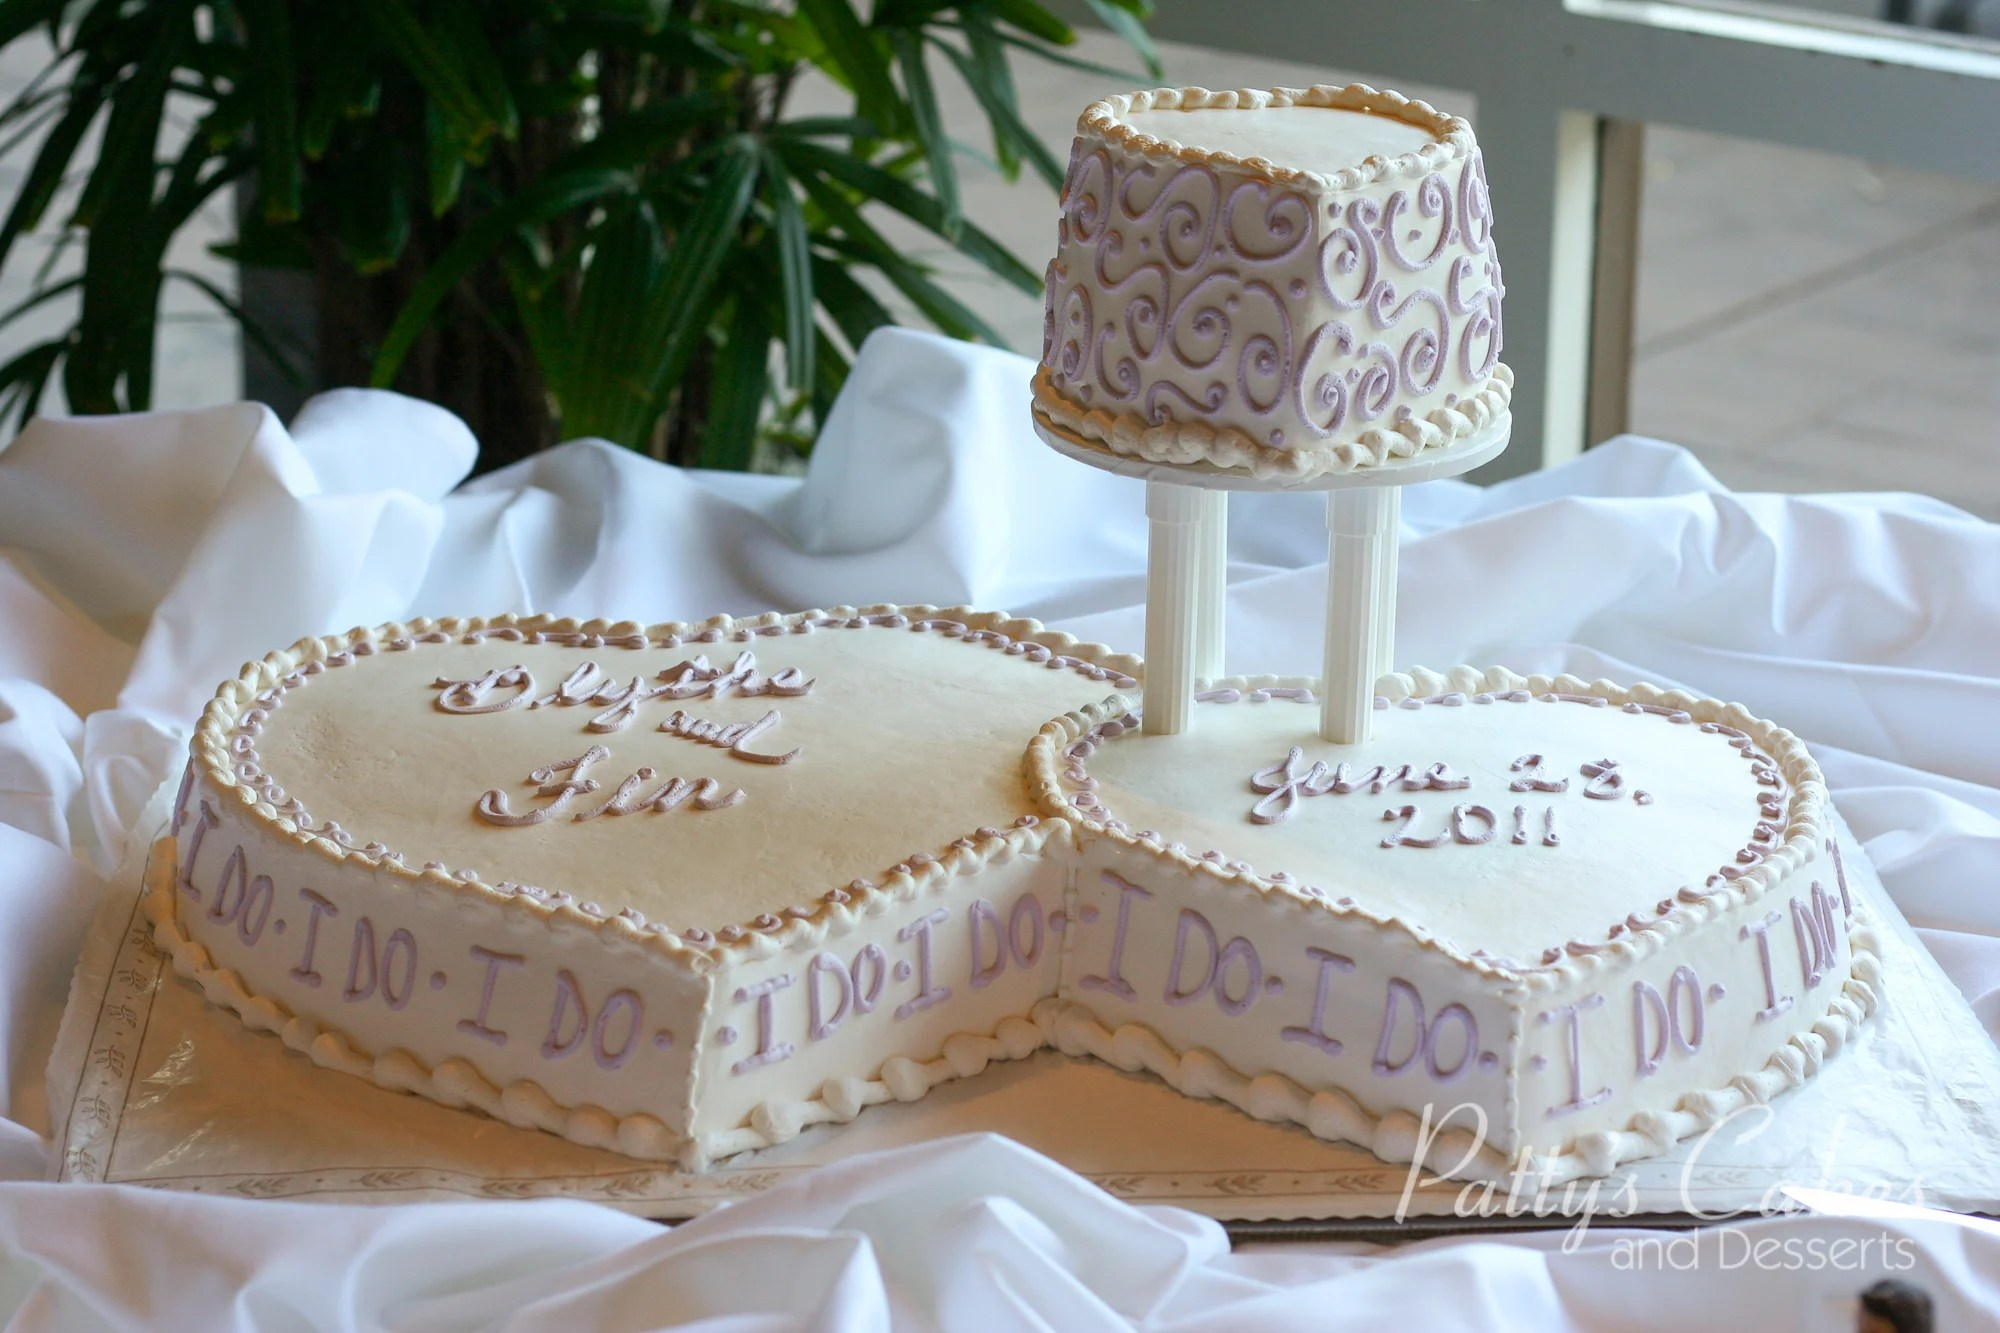 Photo of a double heart wedding cake  Pattys Cakes and Desserts